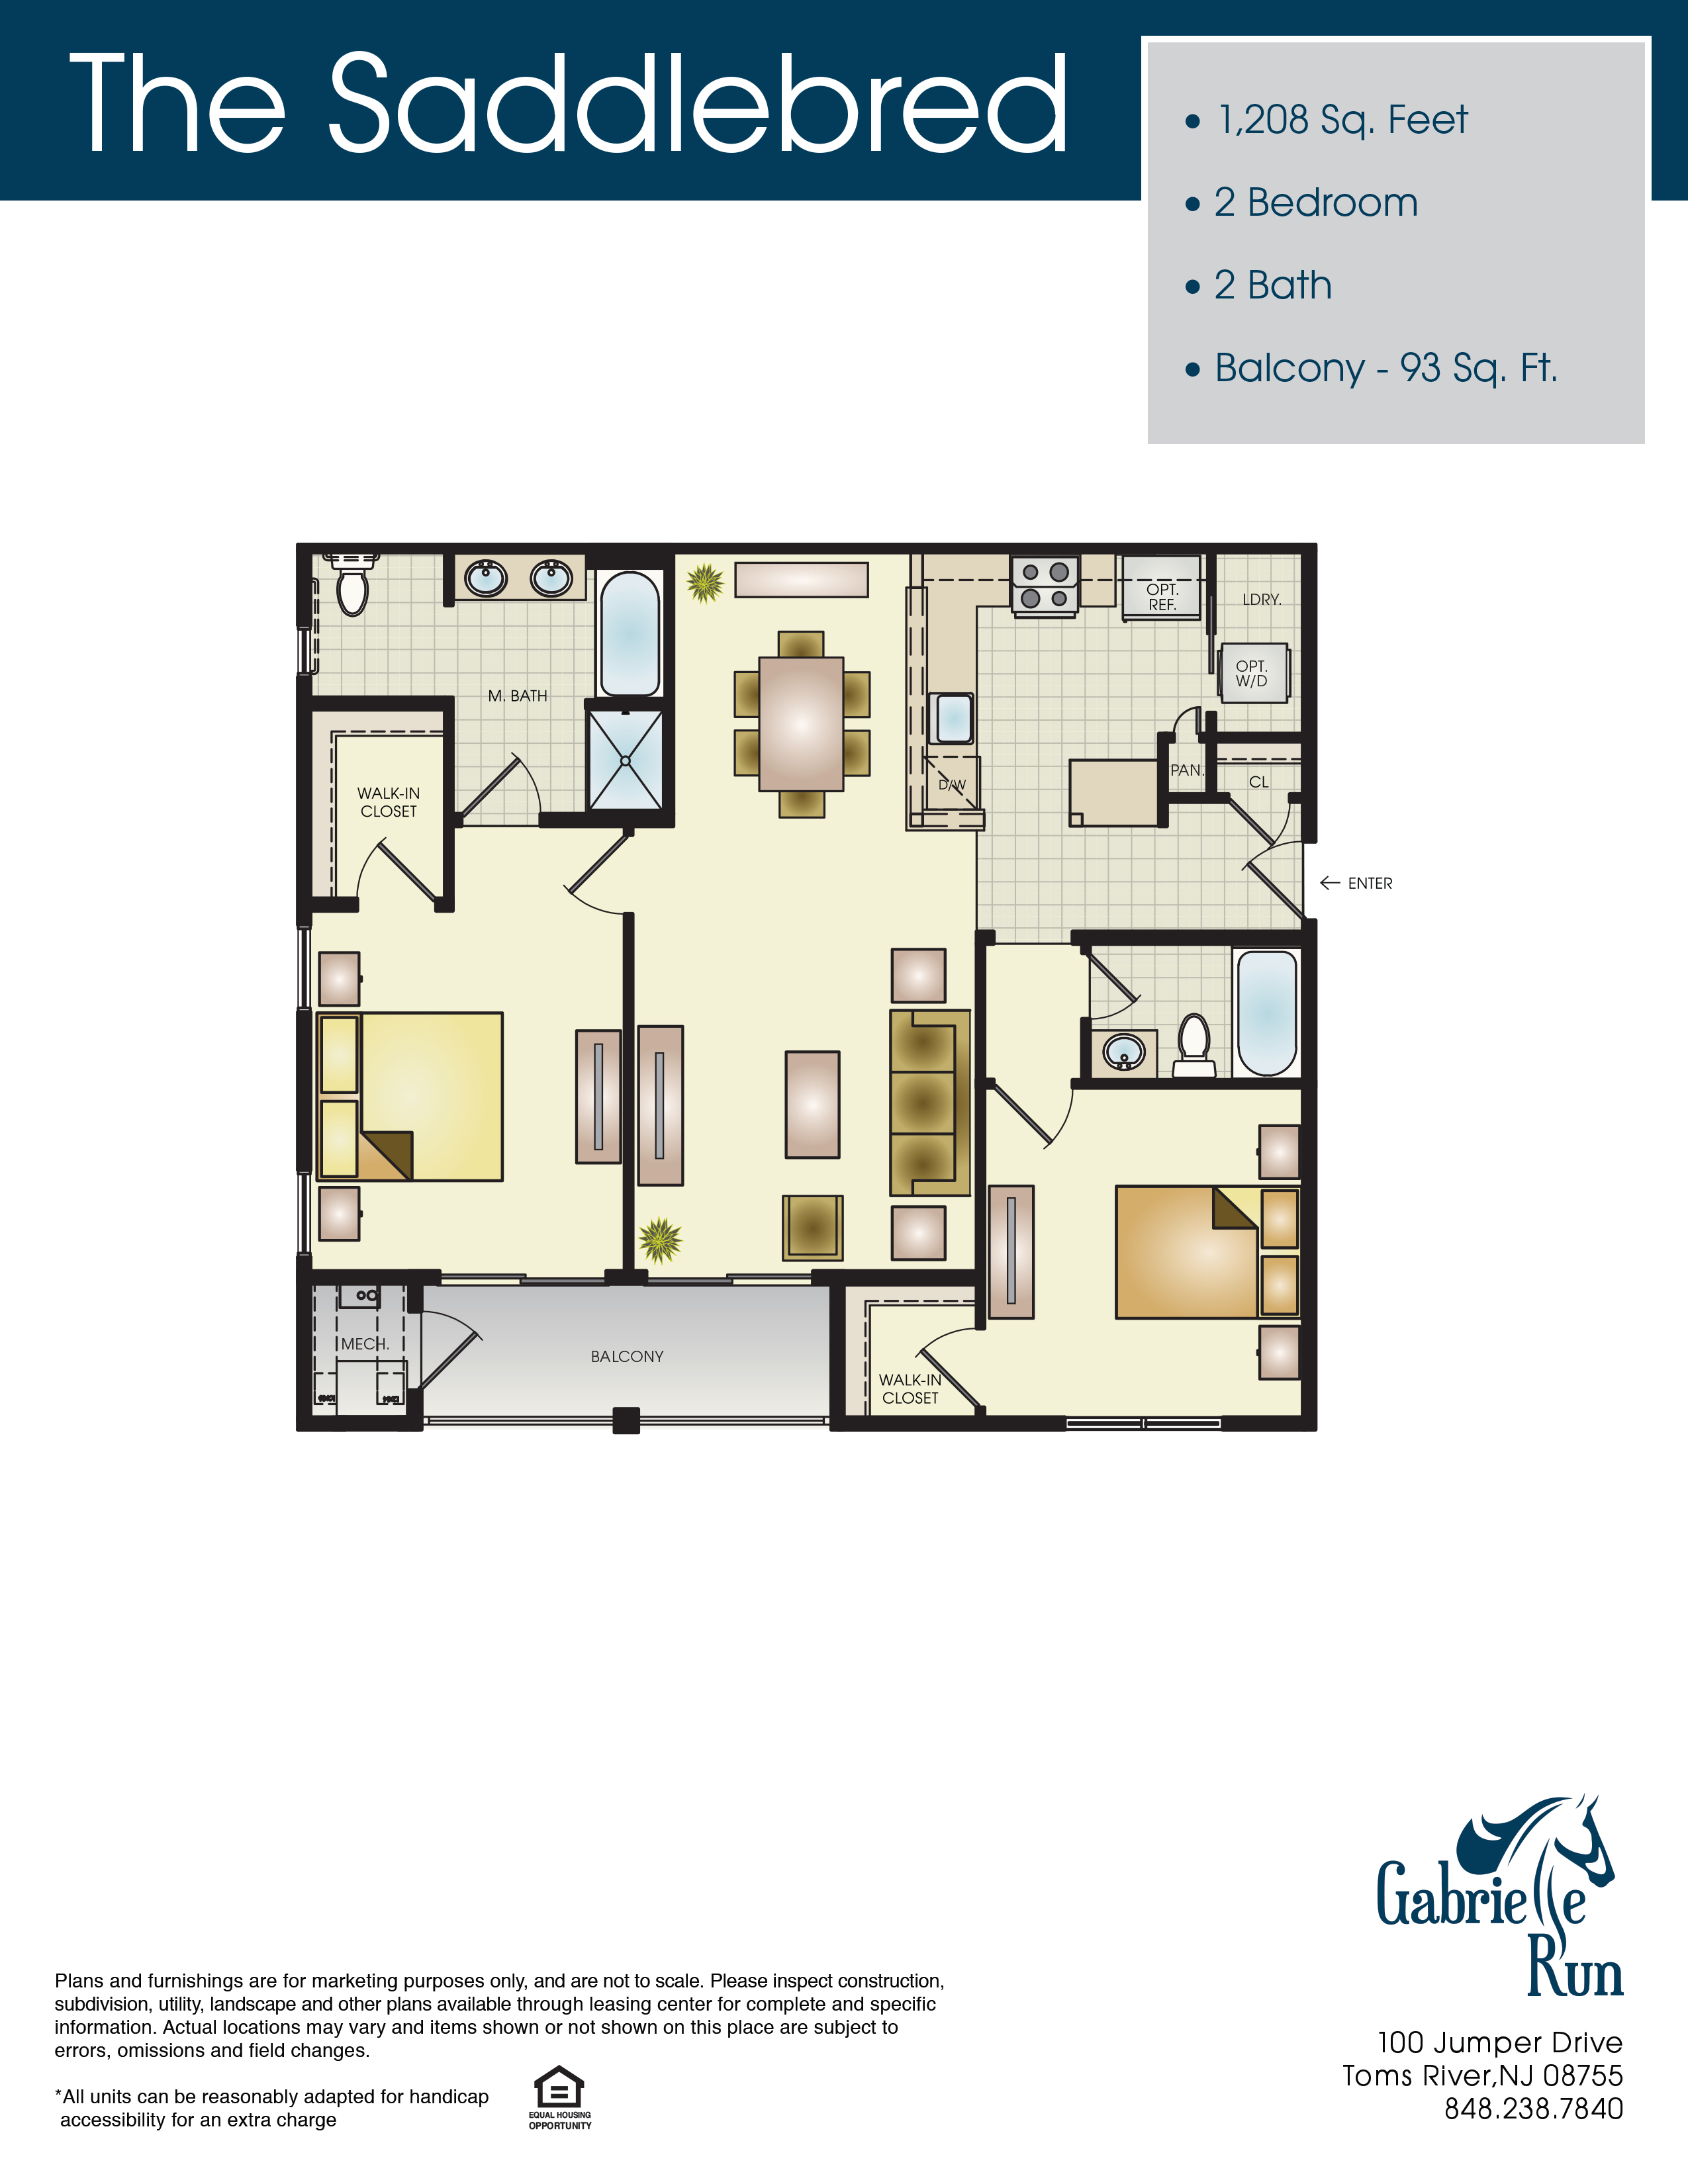 Gabrielle Run Floor Plan Saddlebred